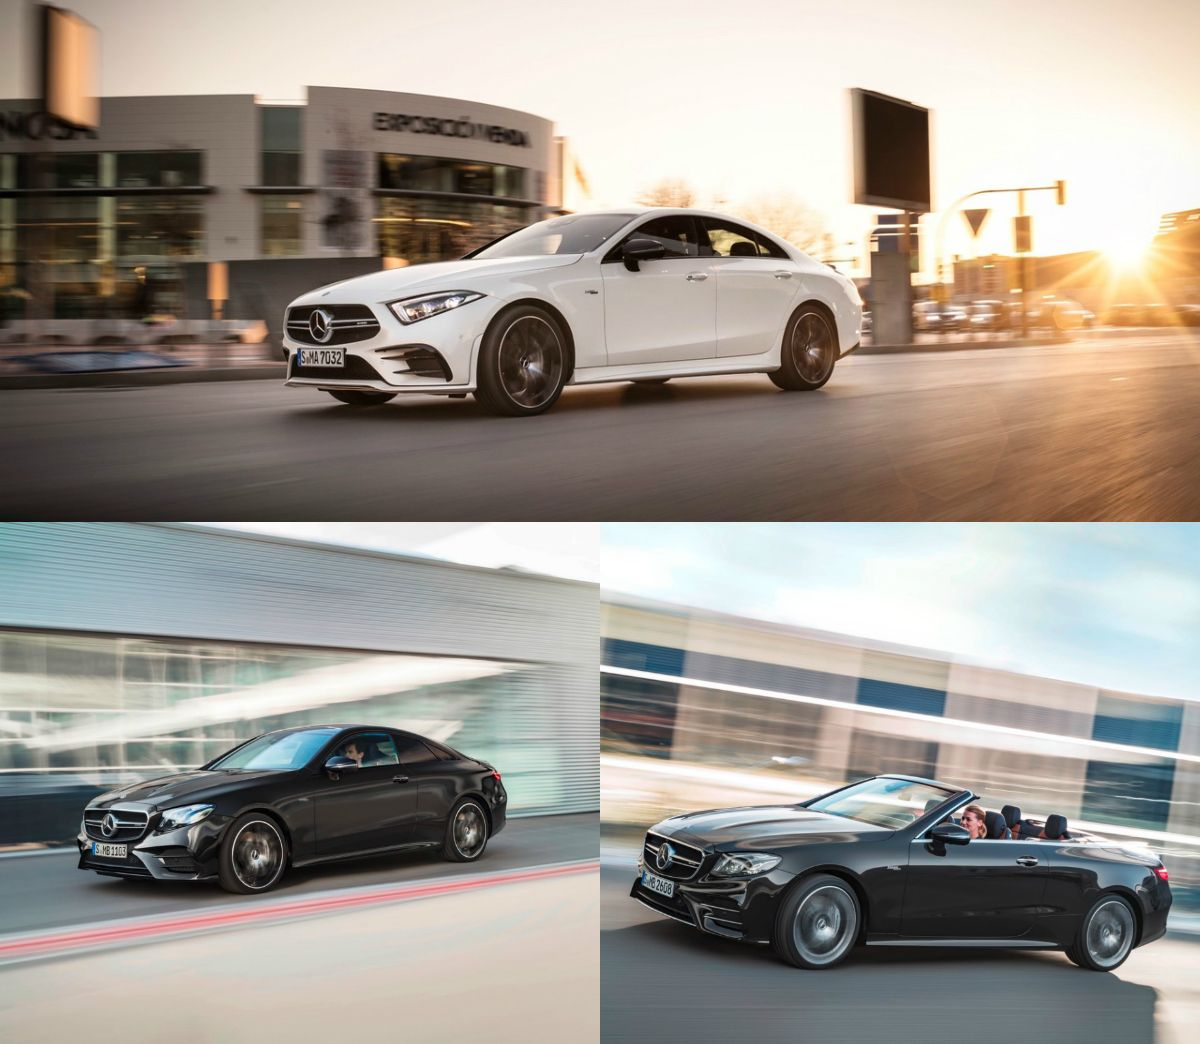 Der Neue Mercedes Amg Cls 53 4matic 2019: Hitting The Showroom Floors This August! The New Mercedes